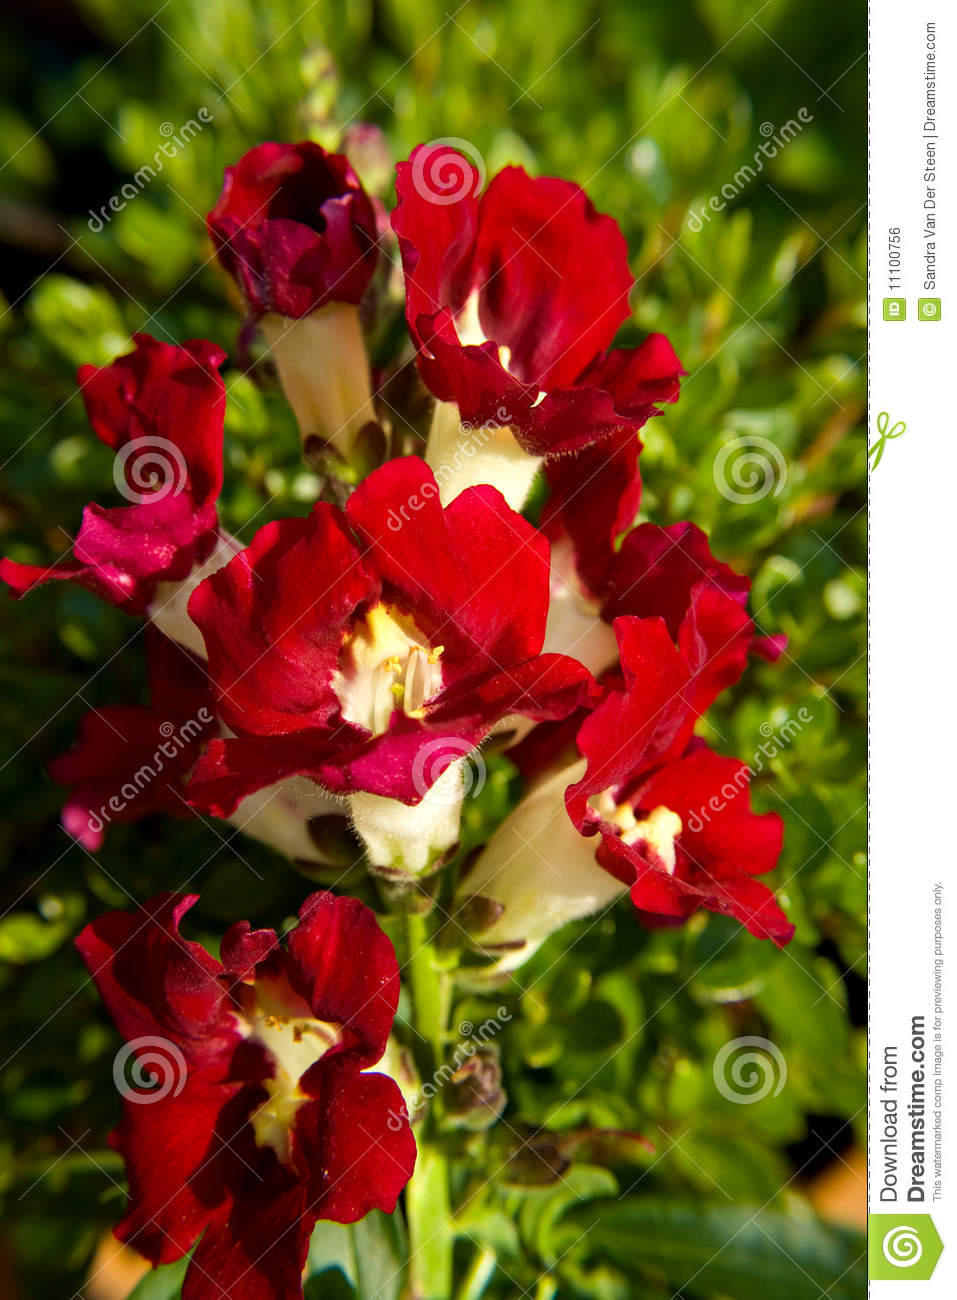 Snapdragon flower stock photo. Image of closeup, blossom - 11100756